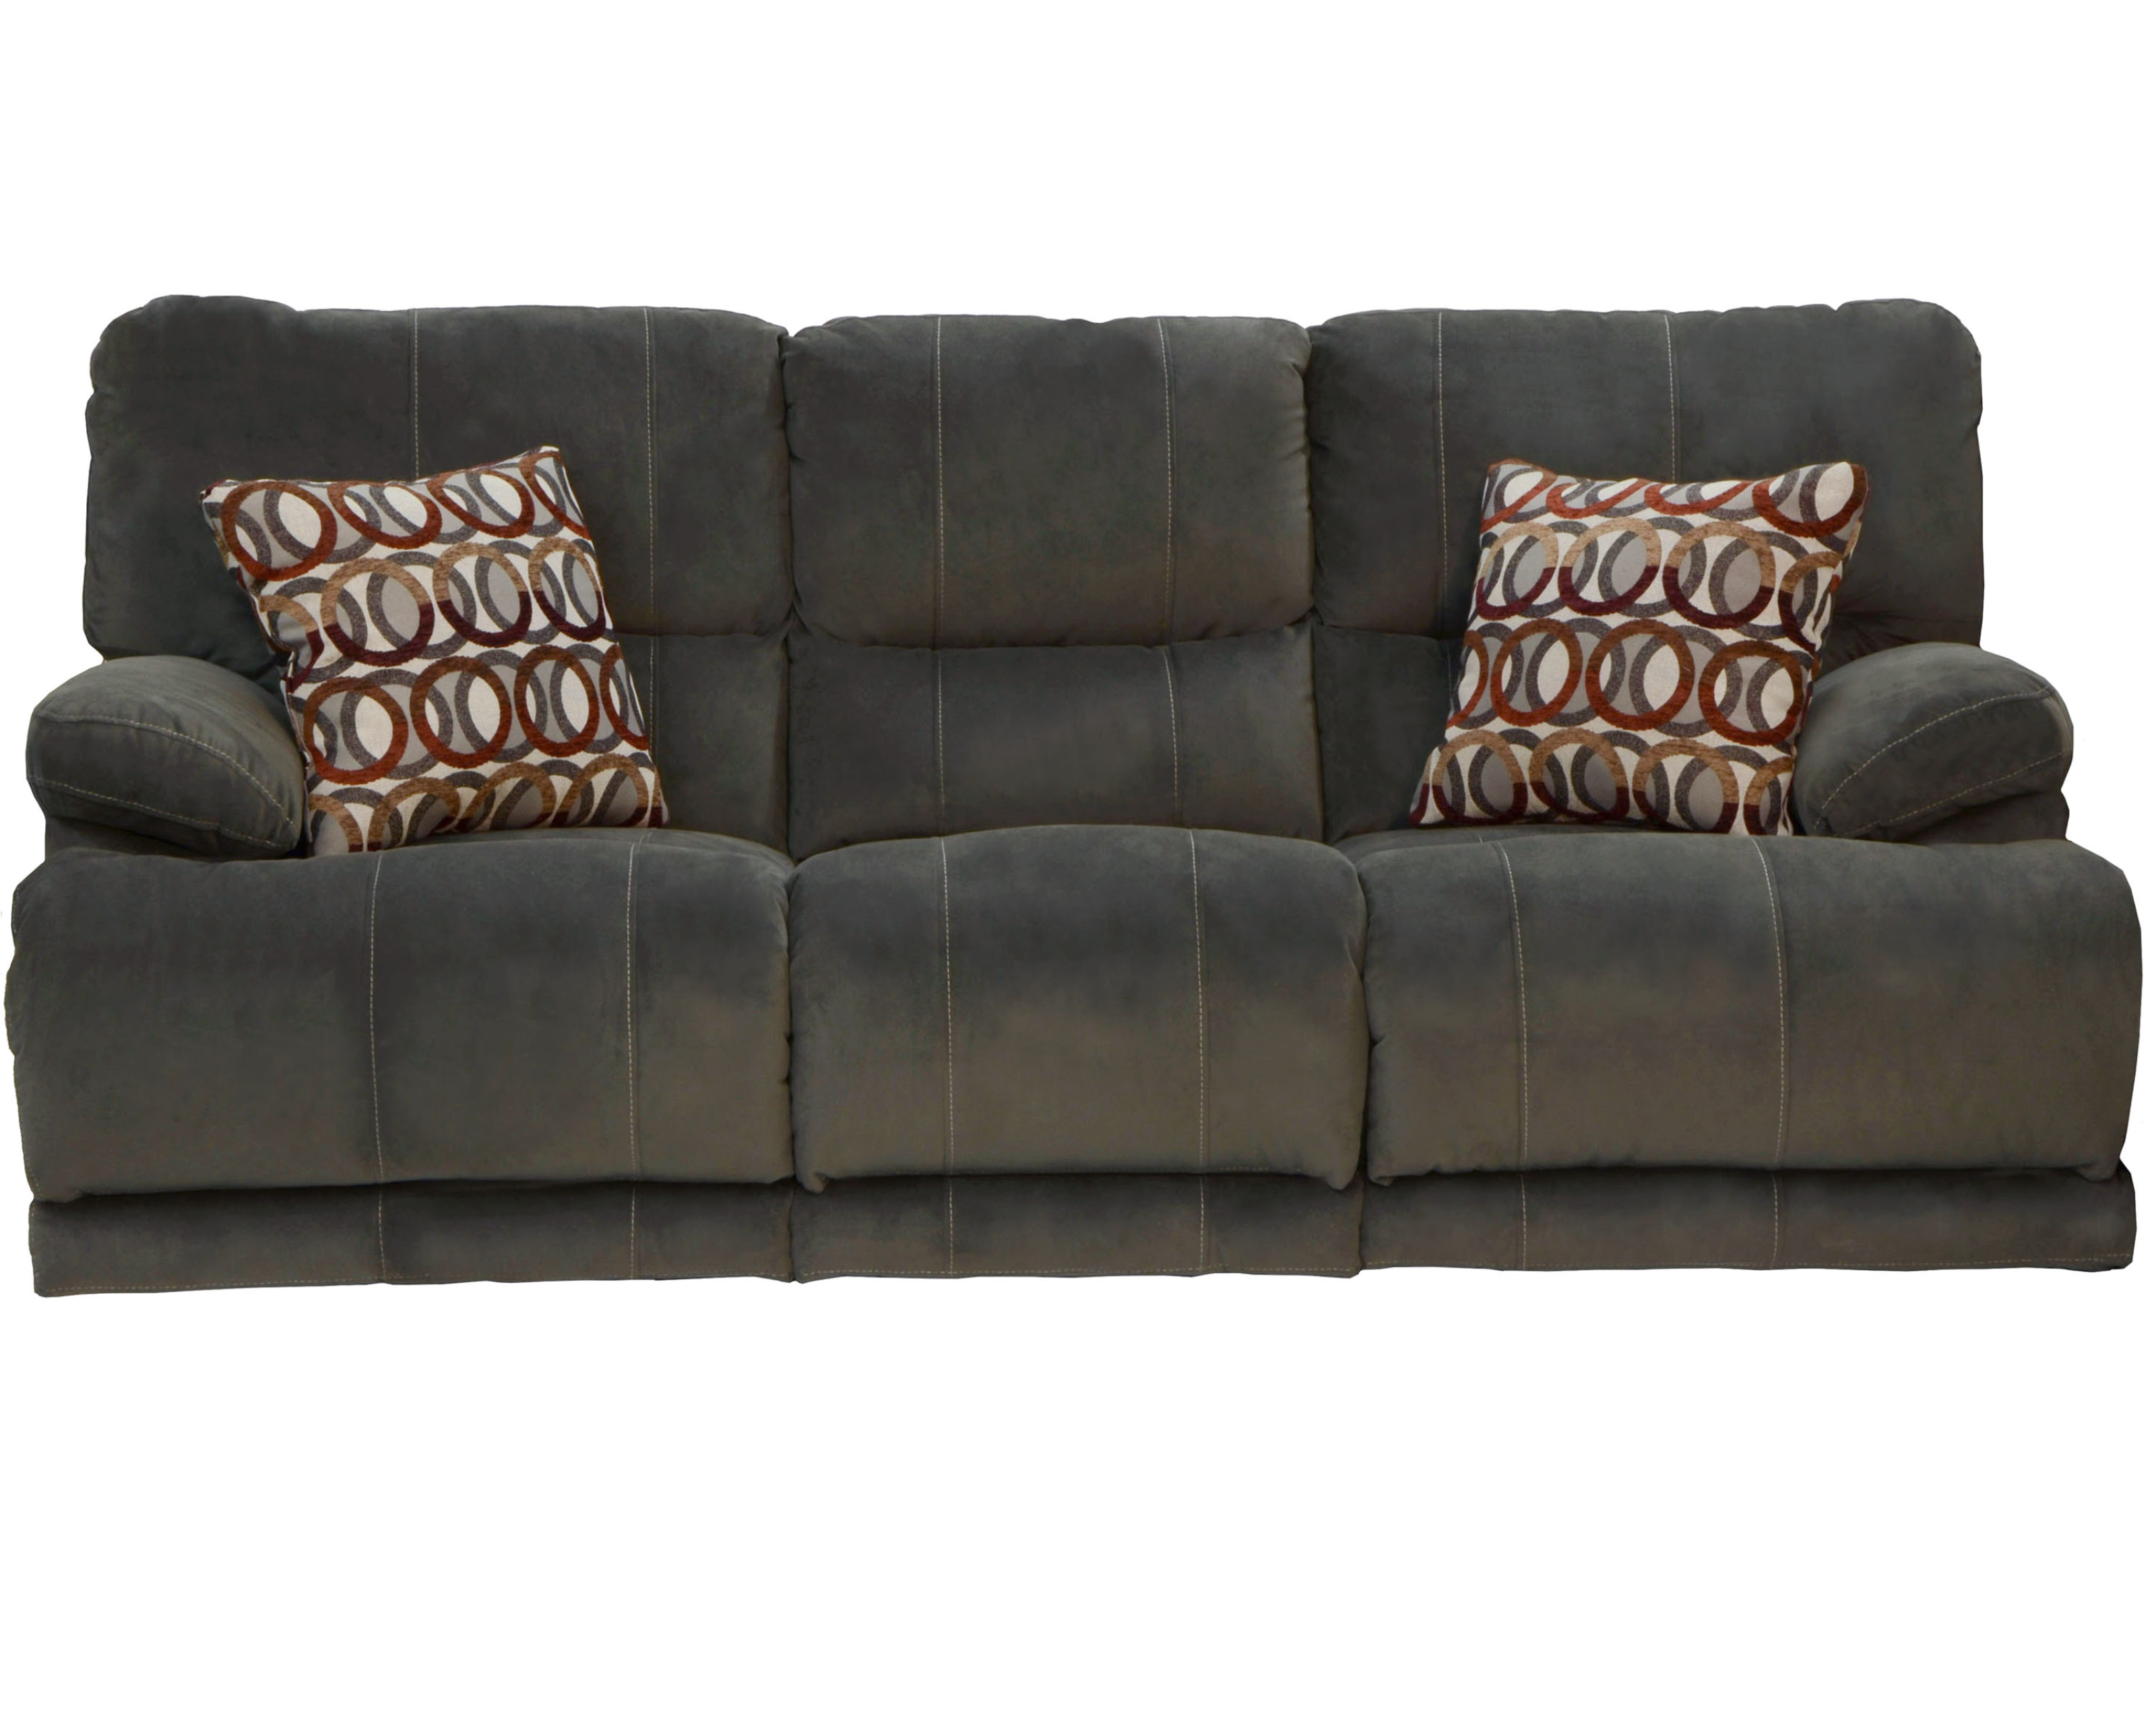 Riley Reclining Sofa Loveseat With Cup Holders Storage 3 Colors Available